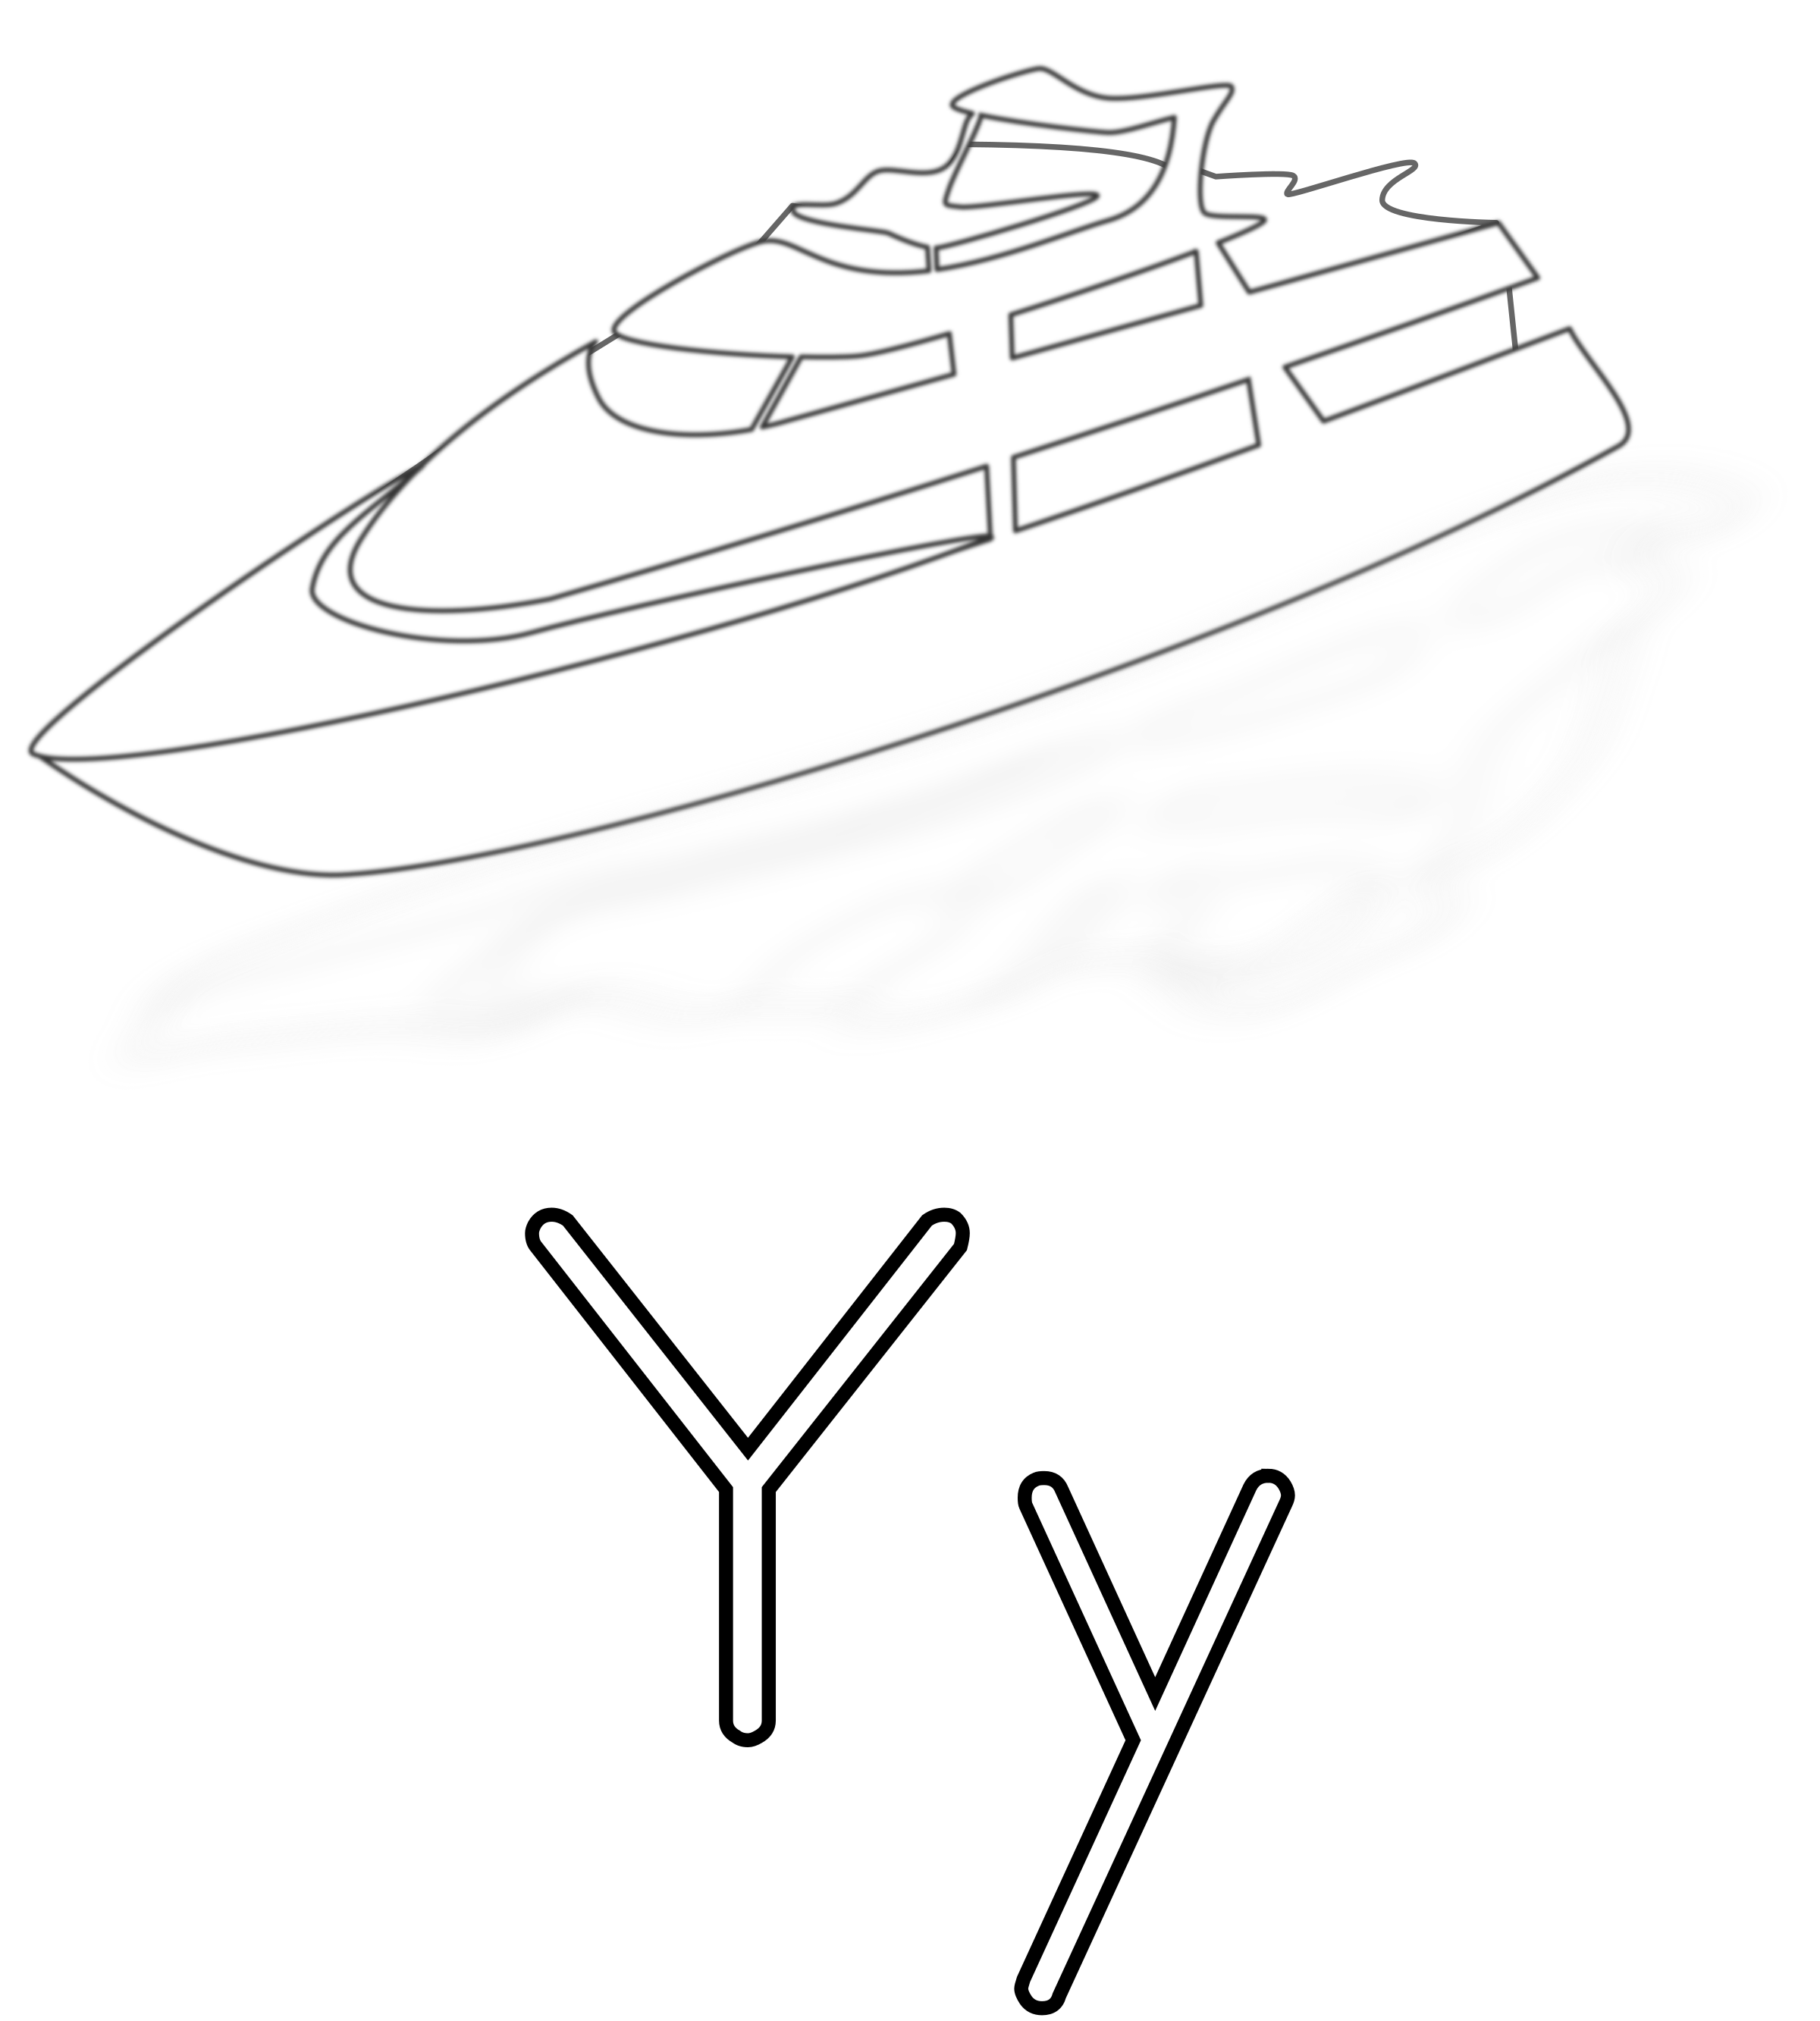 image Yacht clipart boat trip. Yate free on dumielauxepices